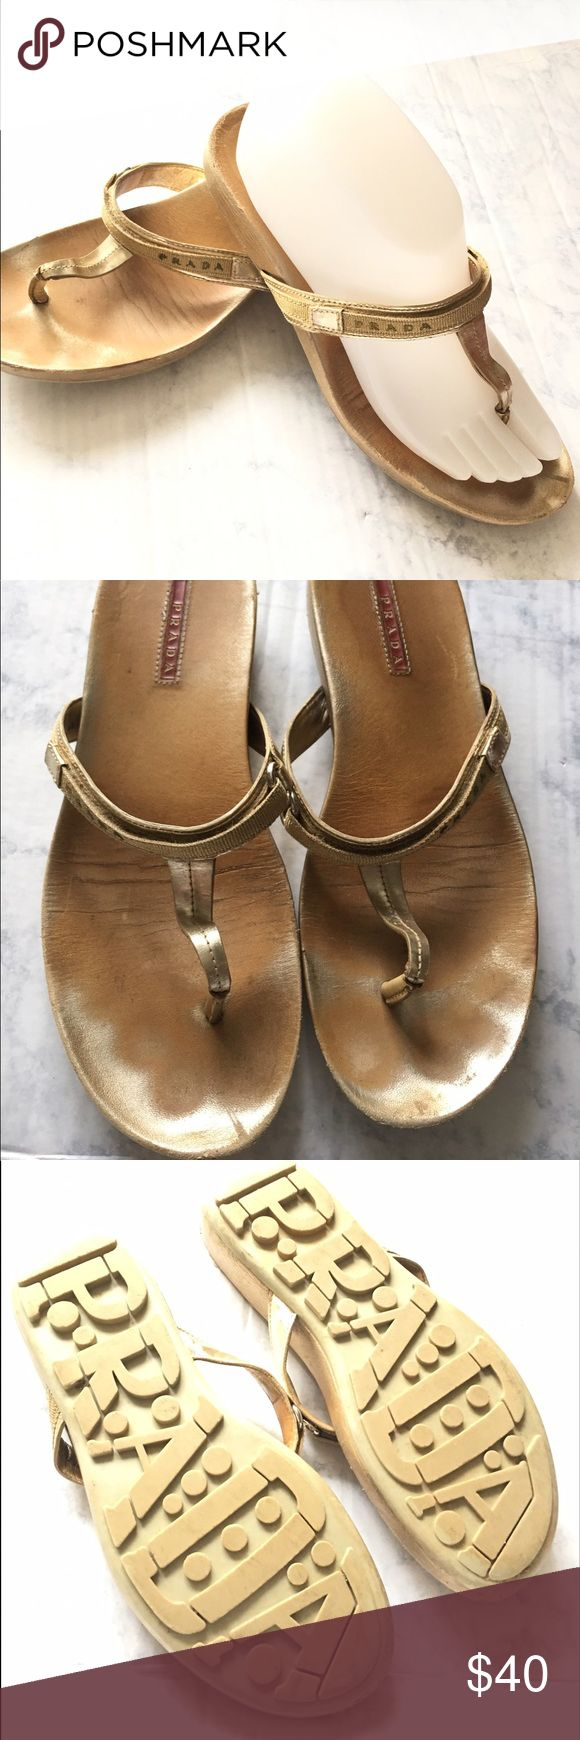 Gold Prada Flip Flops size 8.5 Good overall condition, all fasteners in tack. Plenty of life left in them. Prada Shoes Sandals